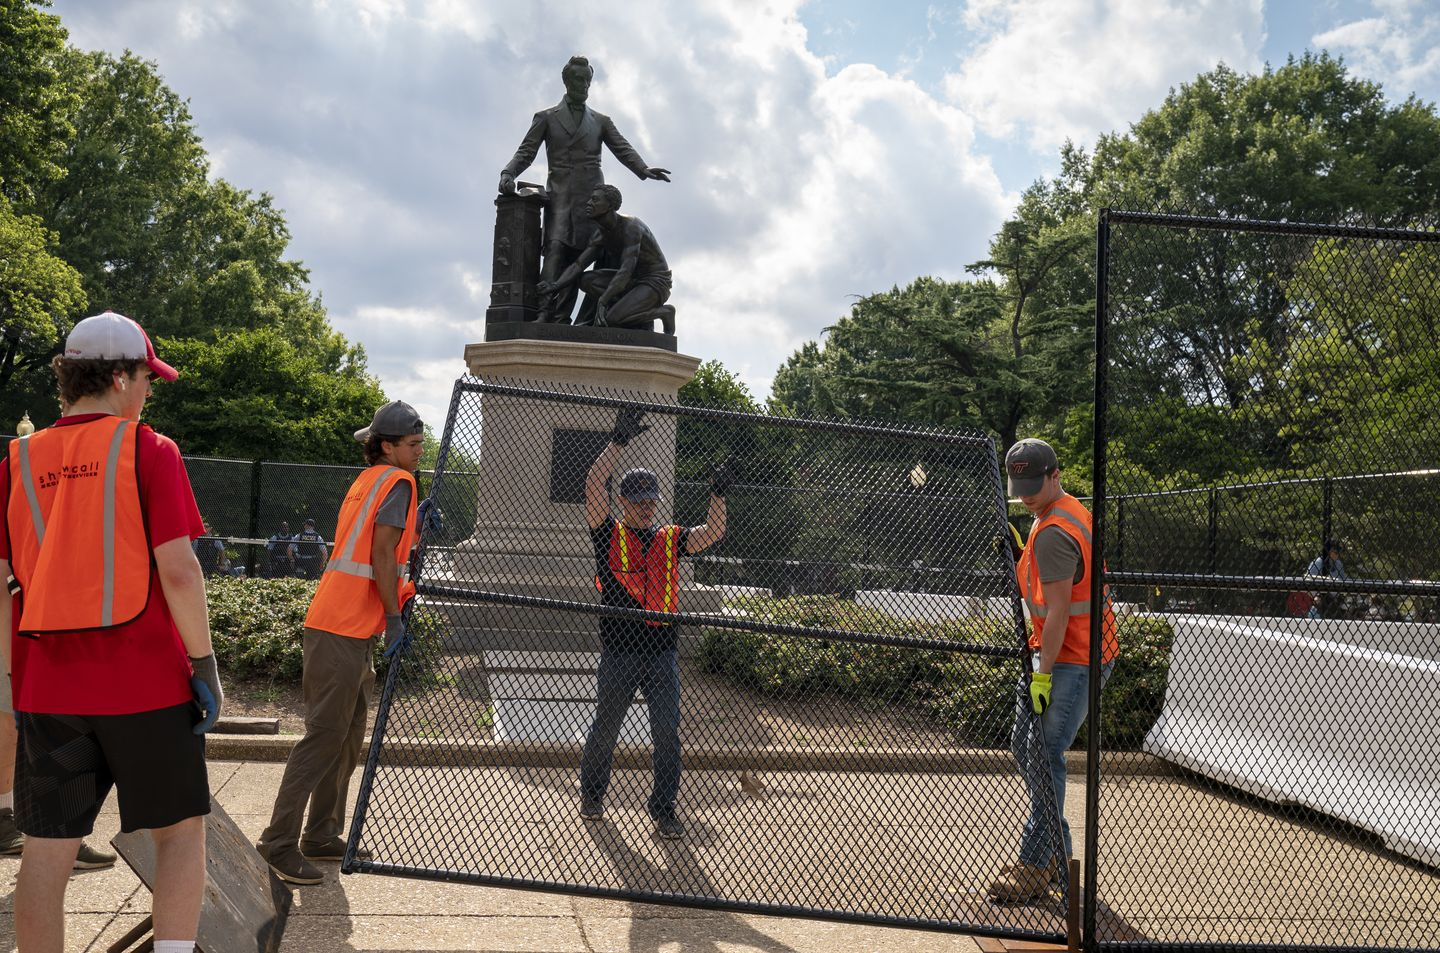 Don't move the Lincoln emancipation statue or the others